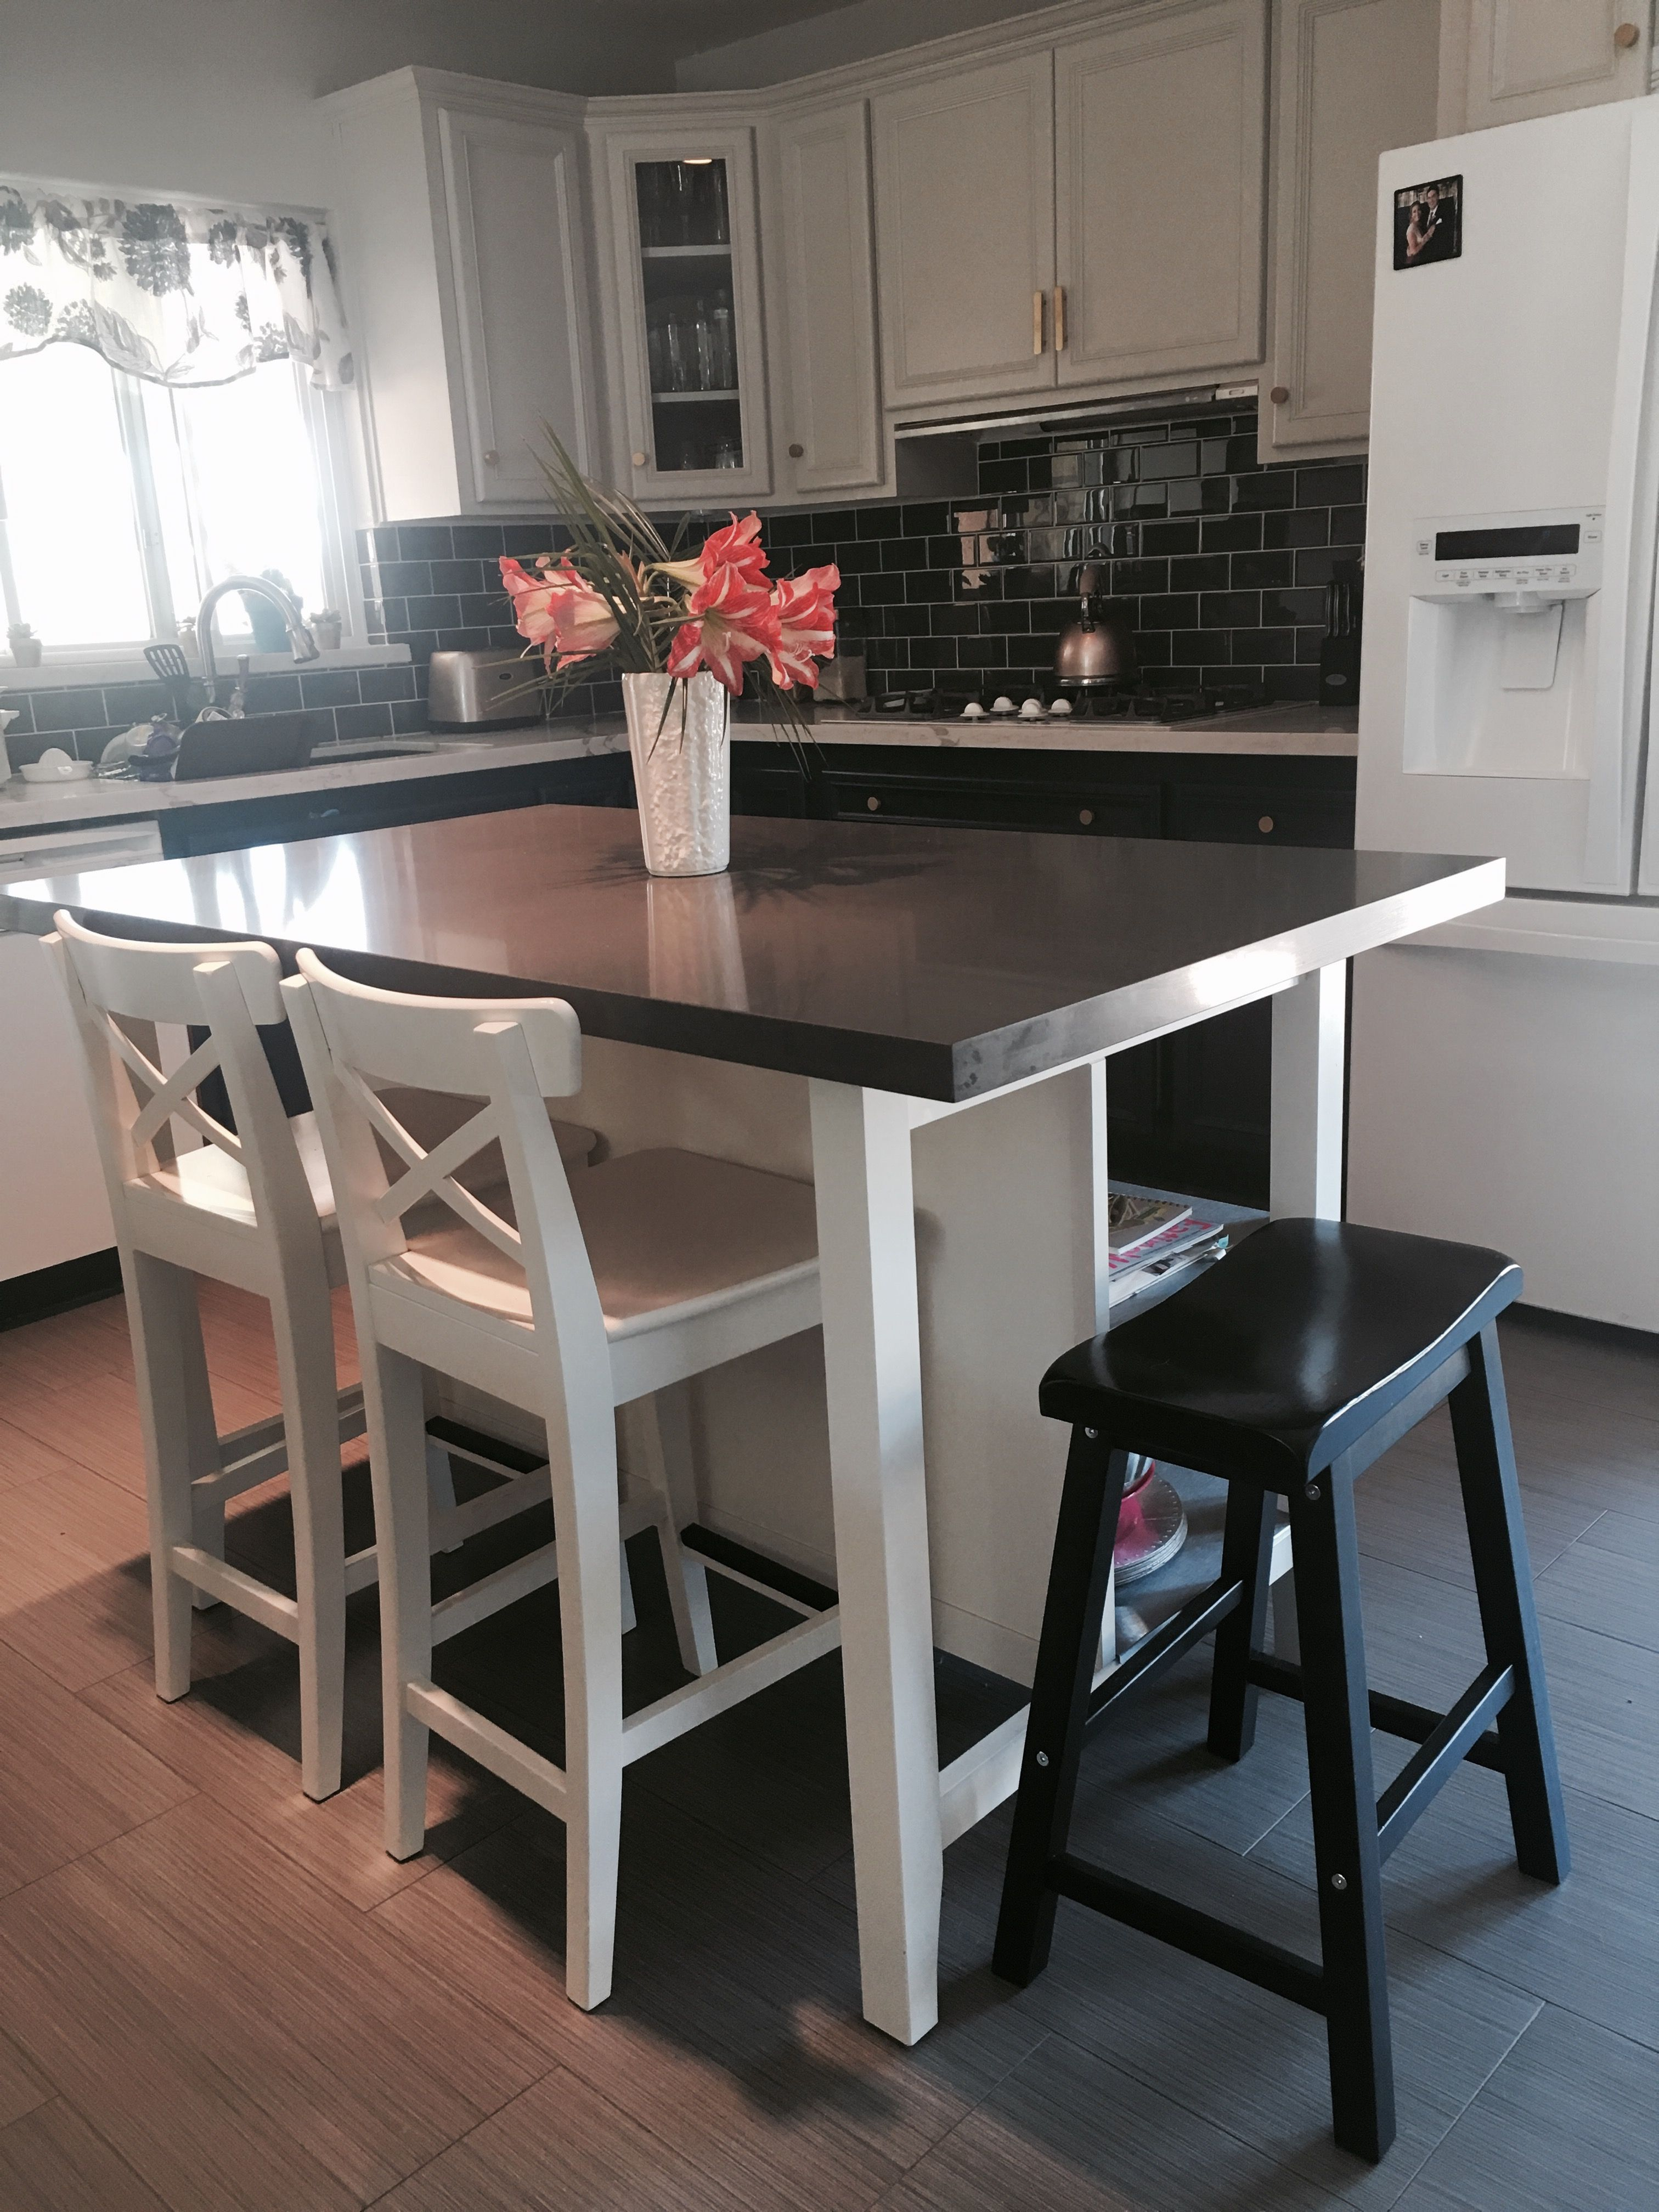 Ikea Stenstorp Kitchen Island Hack. Here is another view ...